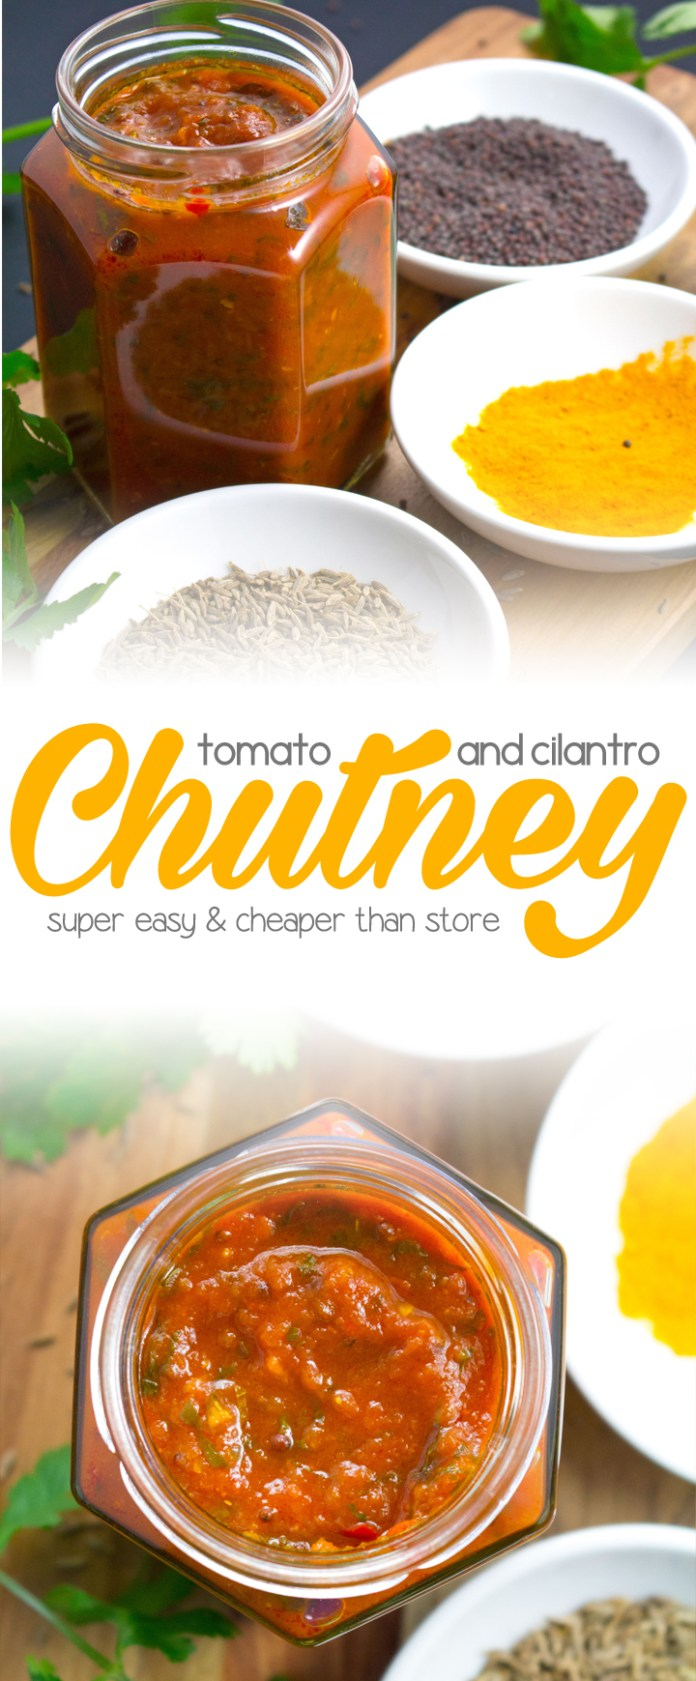 Tomato and Cilantro Chutney - You'll never buy store bought again after trying this easy and simple recipe! Packed full of spices and cilantro, you are going to want to eat this chutney with absolutely everything!!